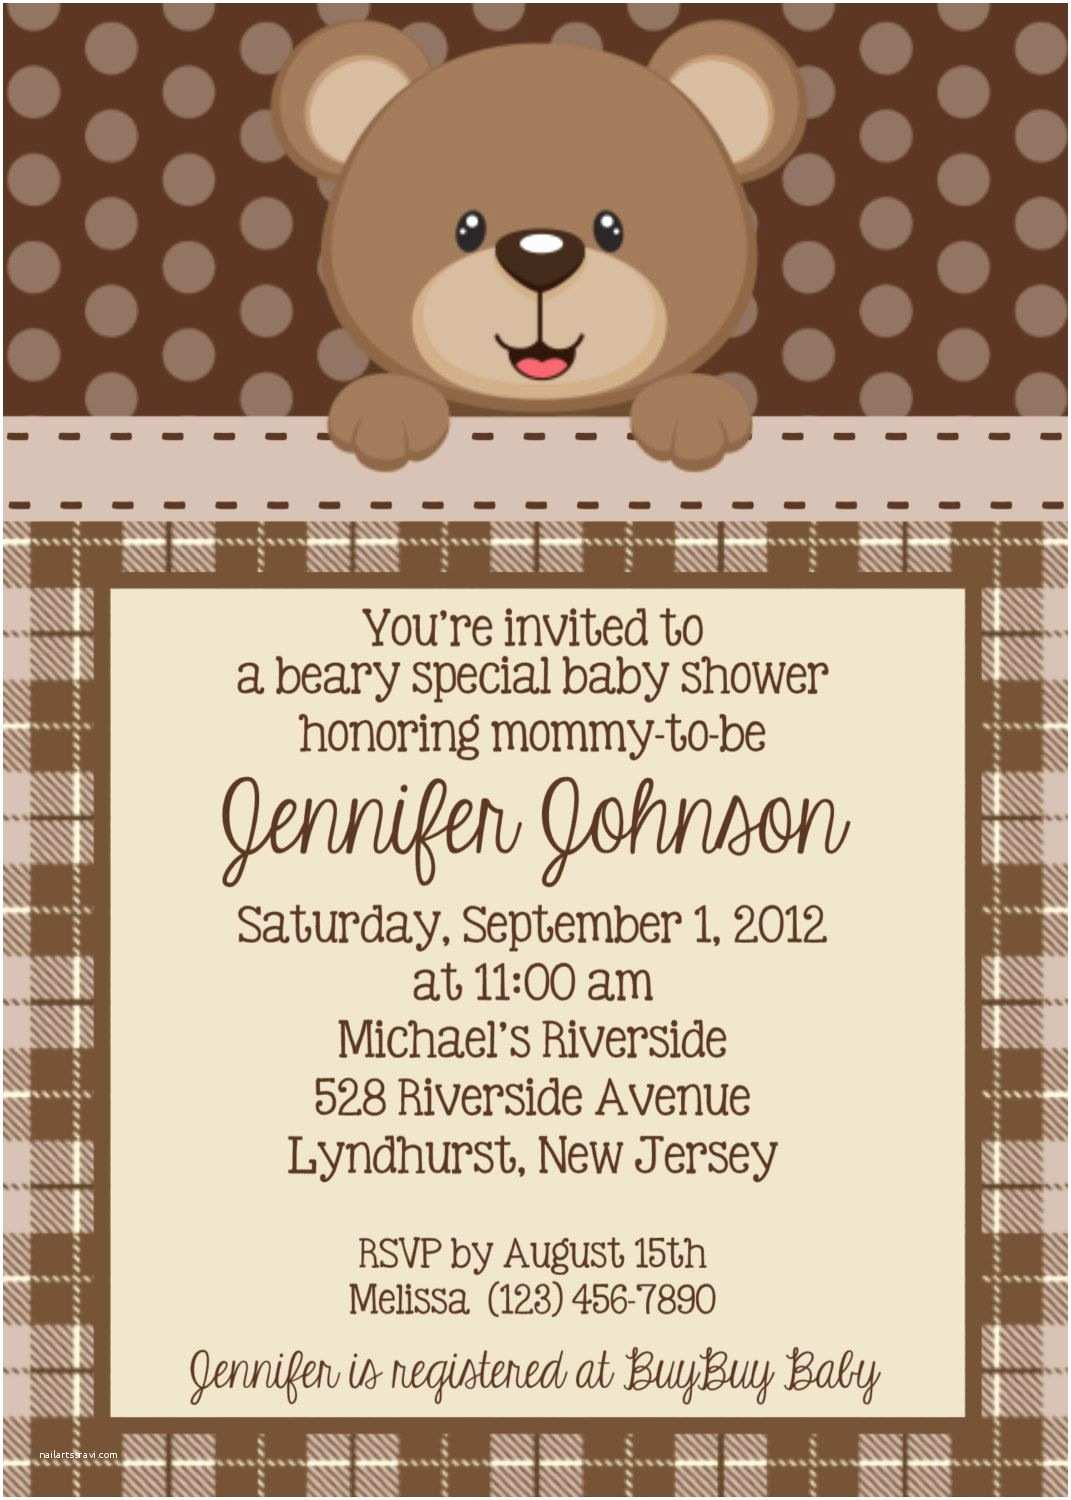 Bear Wedding Invitations Teddy Bear Invitation Personalized Custom Teddy Bear